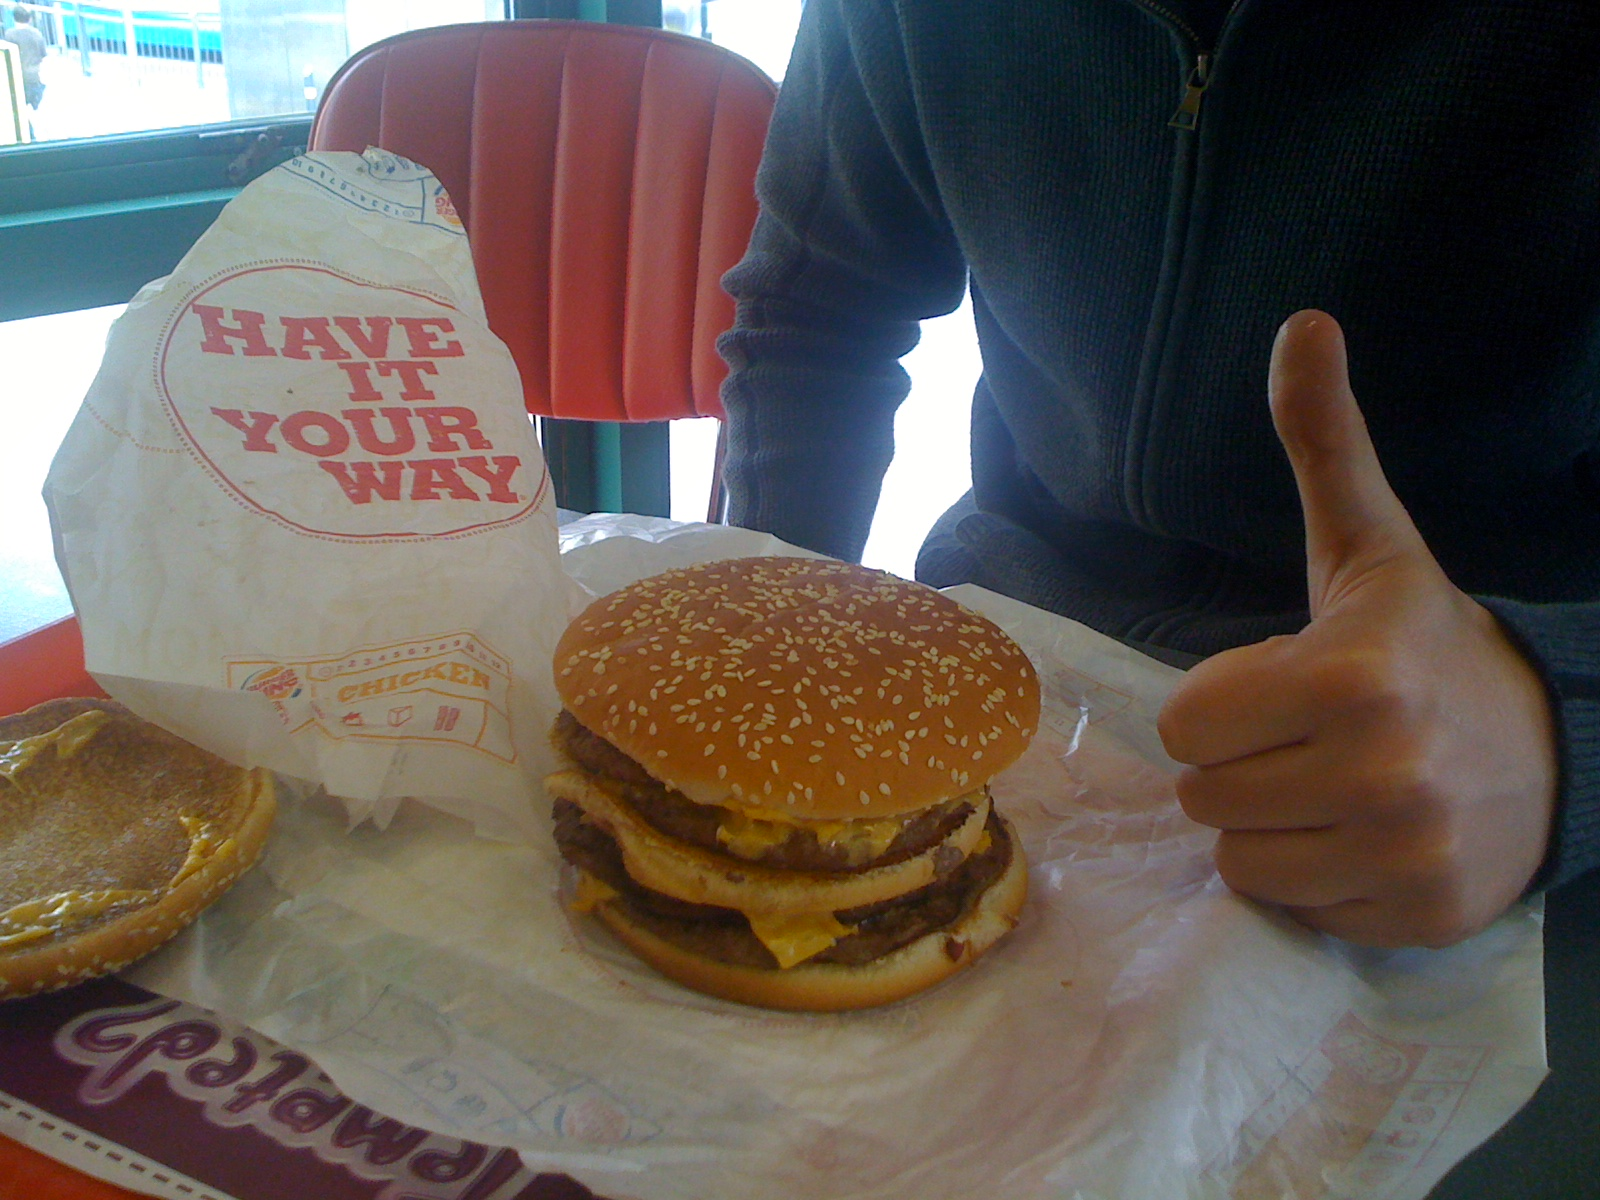 Burger King Double Cheeseburger Sunts 39 Lunch It 39s Just A Blog About Me Lunches Like Page 2